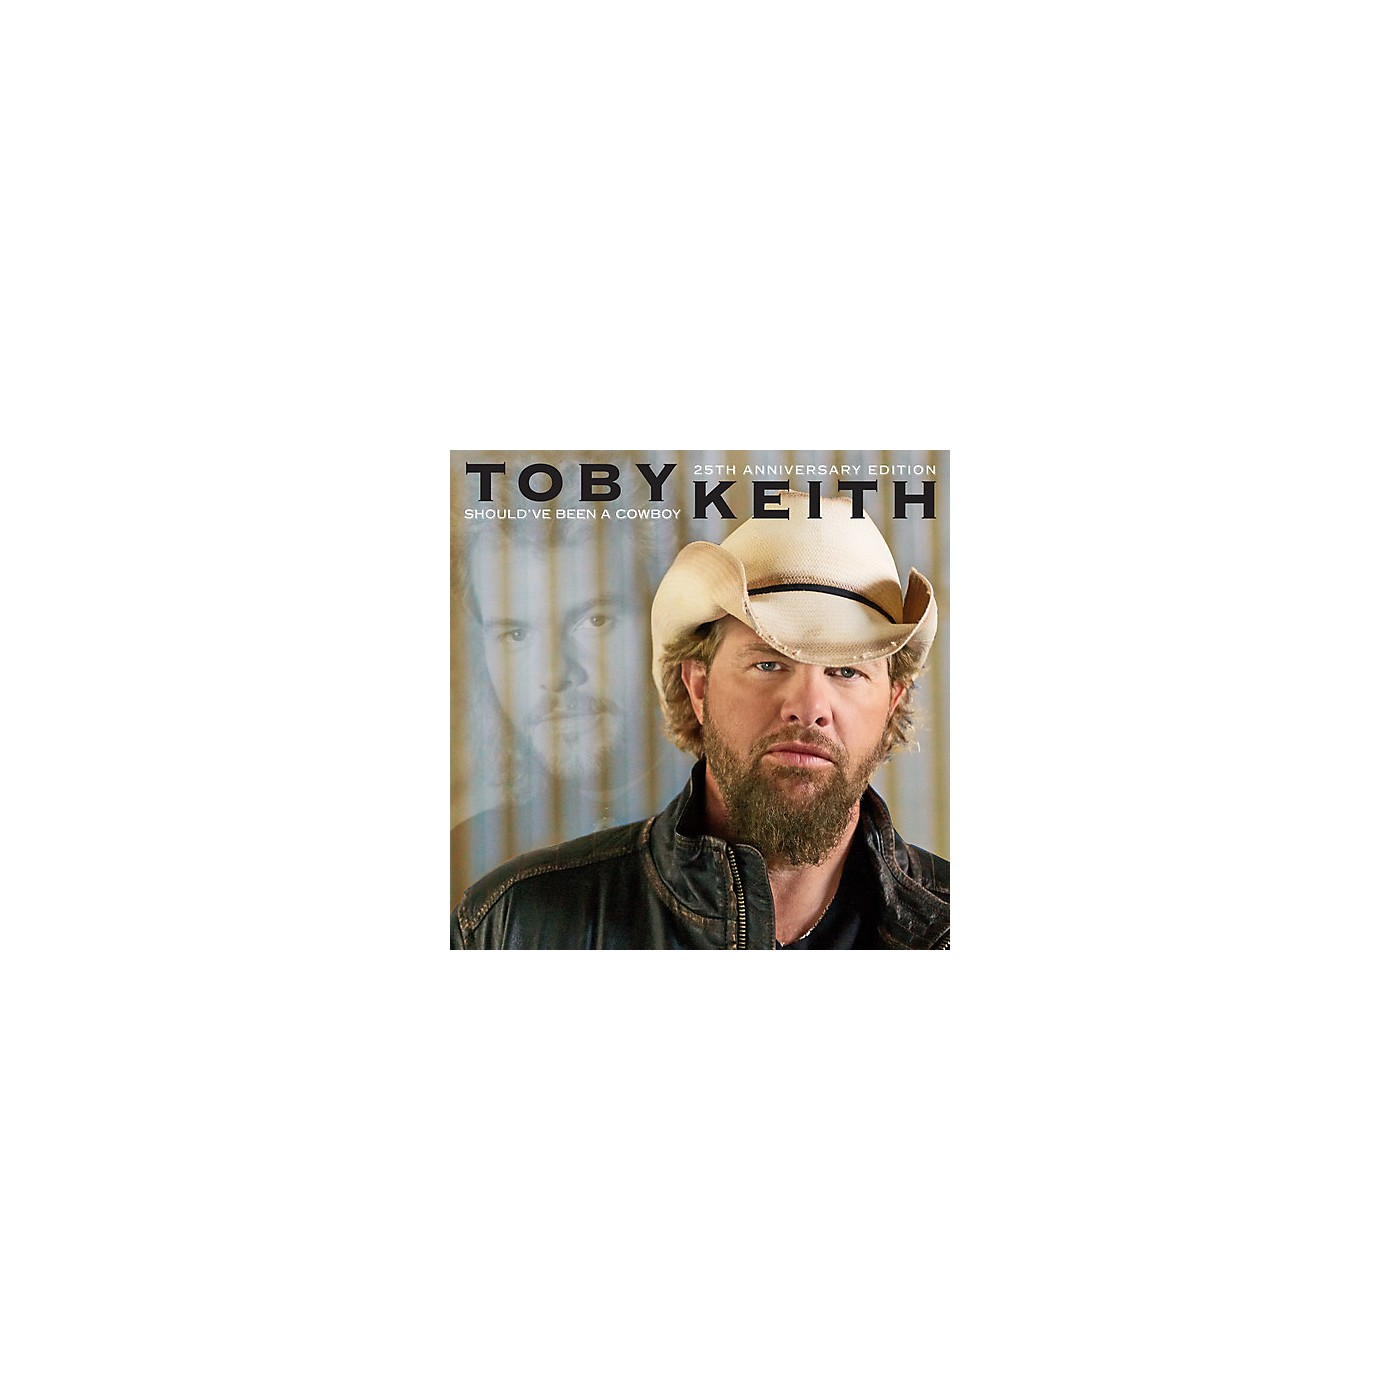 Alliance Toby Keith - Should've Been A Cowboy (25TH Anniversary Edition) thumbnail